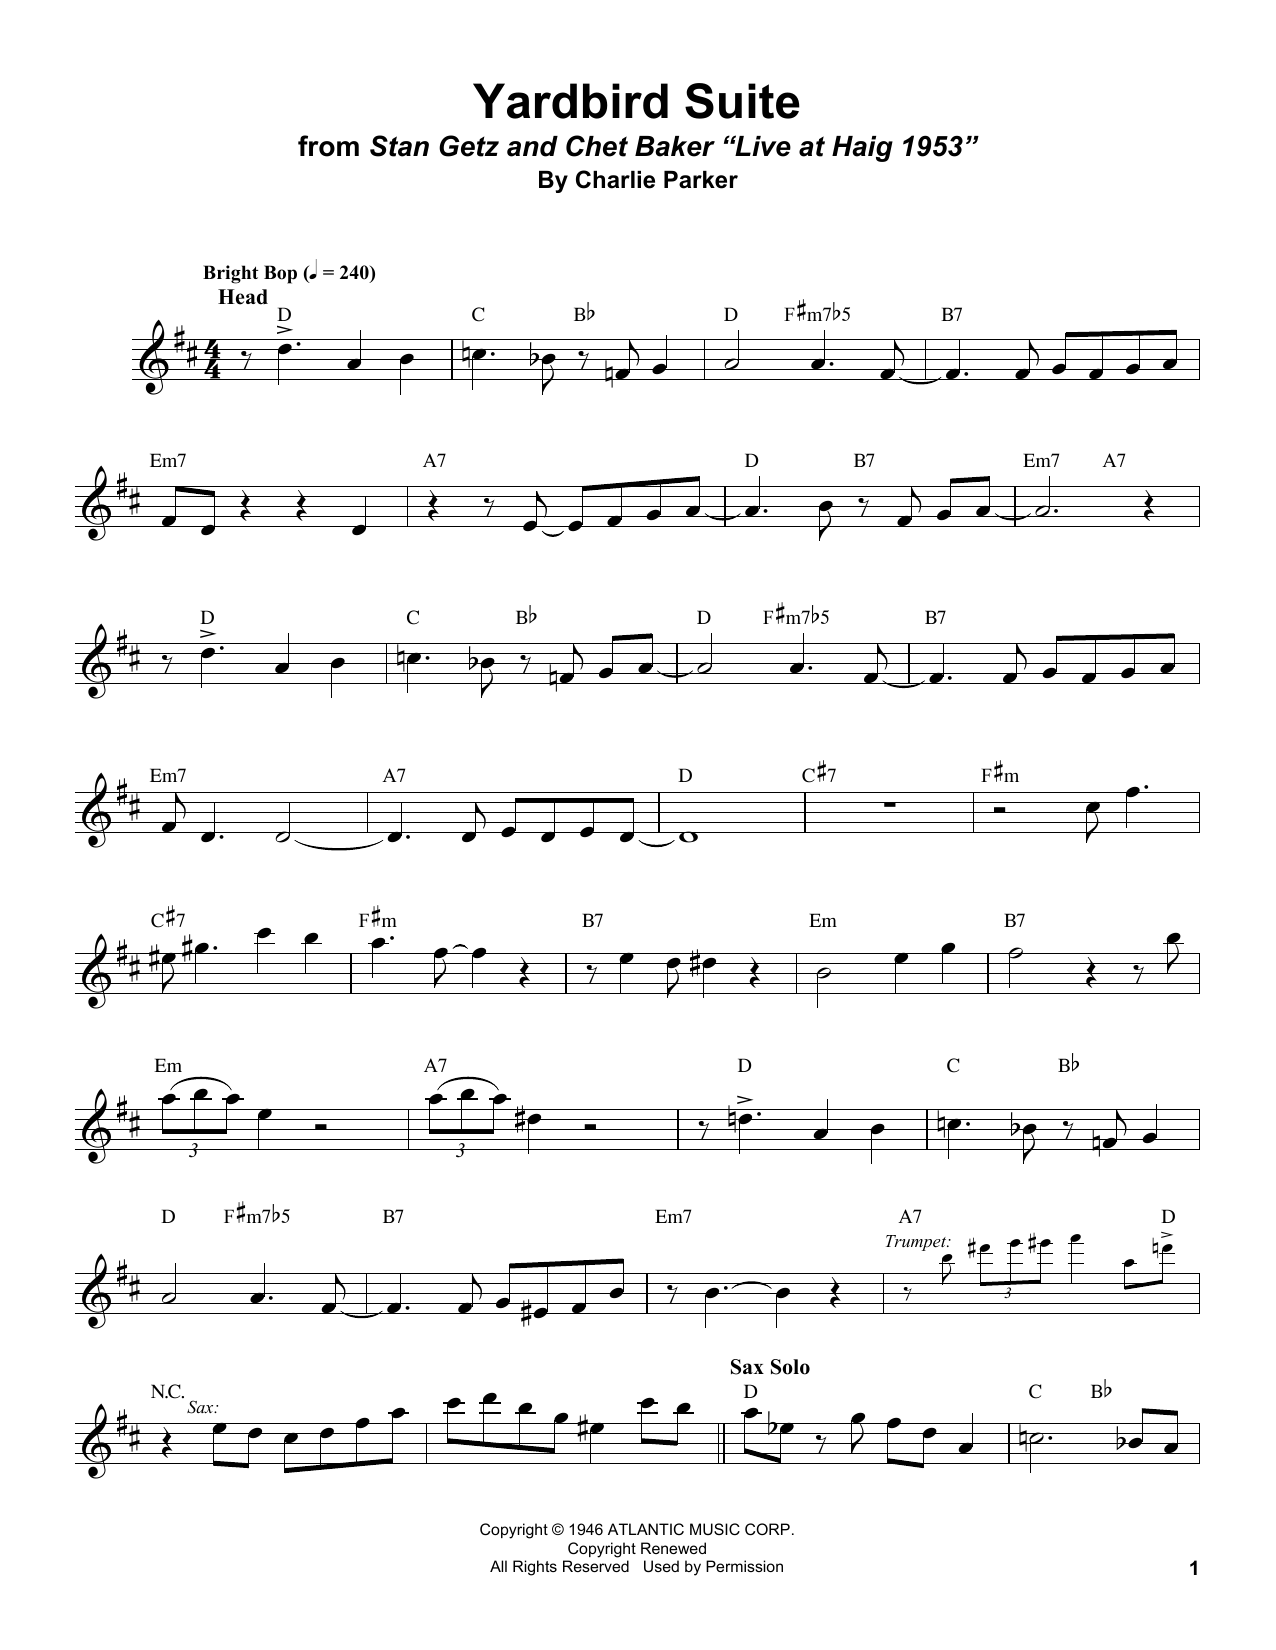 Yardbird Suite (Tenor Sax Transcription) - Print Sheet Music Now